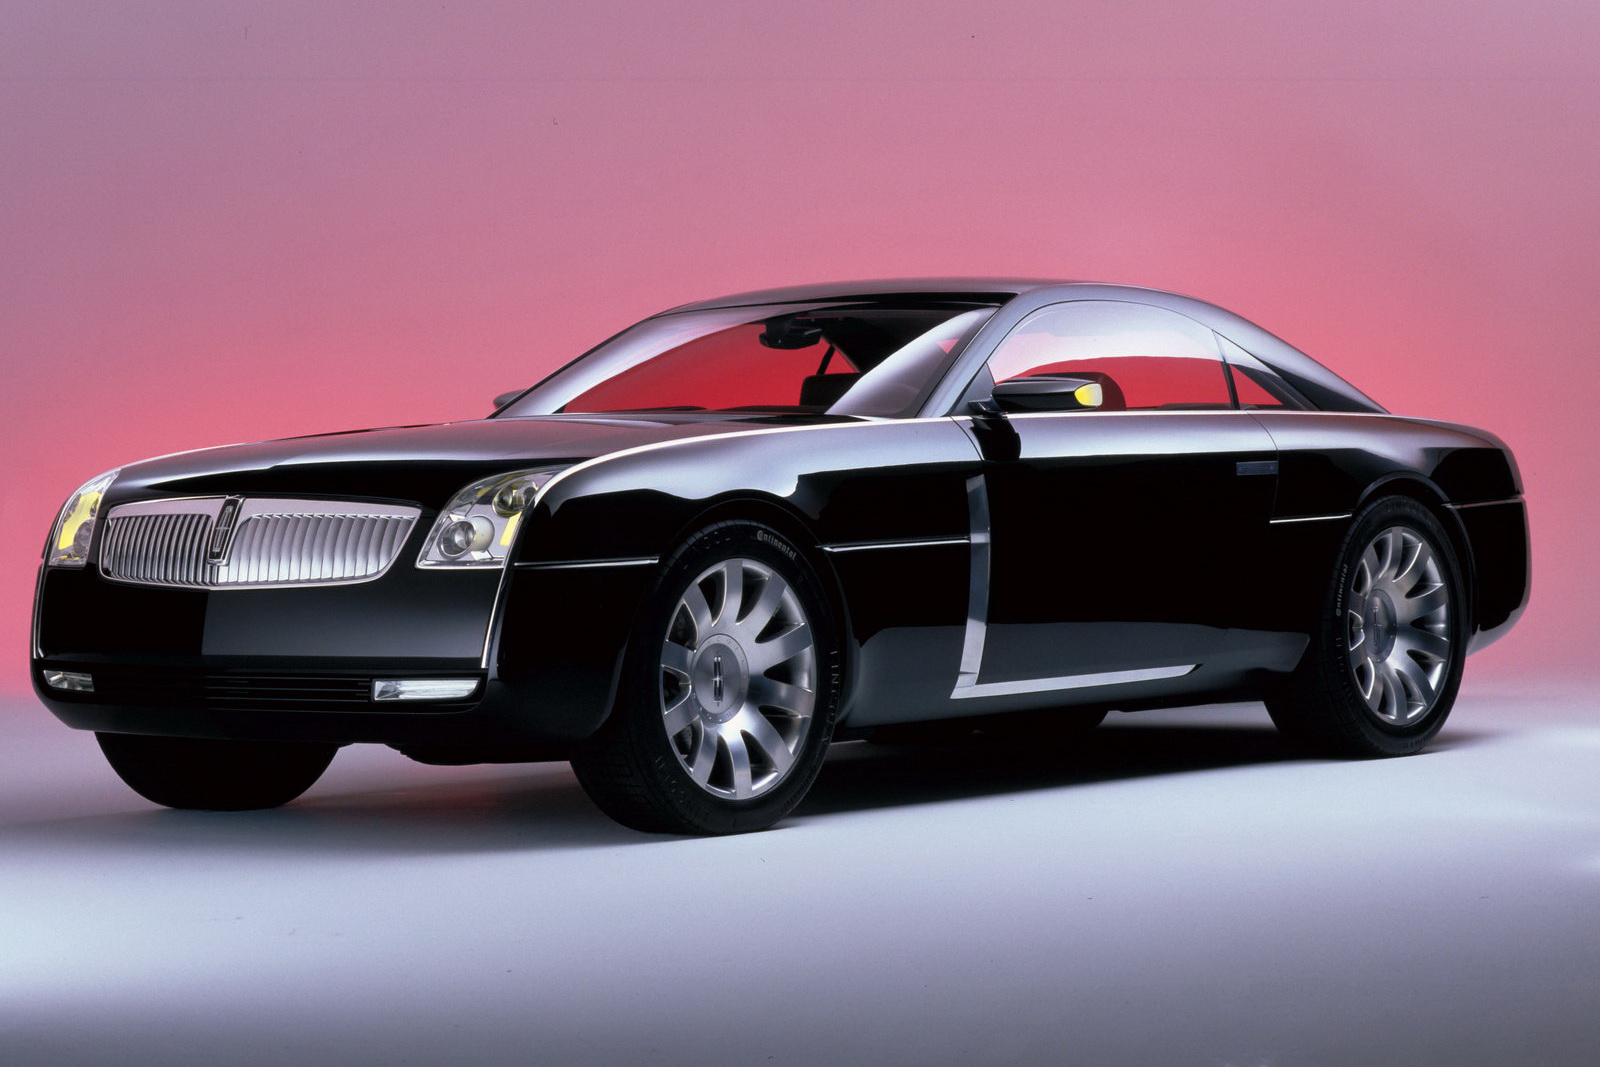 Lincoln Concept Models Including Mk9 And Mark X Going Up HD Wallpapers Download free images and photos [musssic.tk]